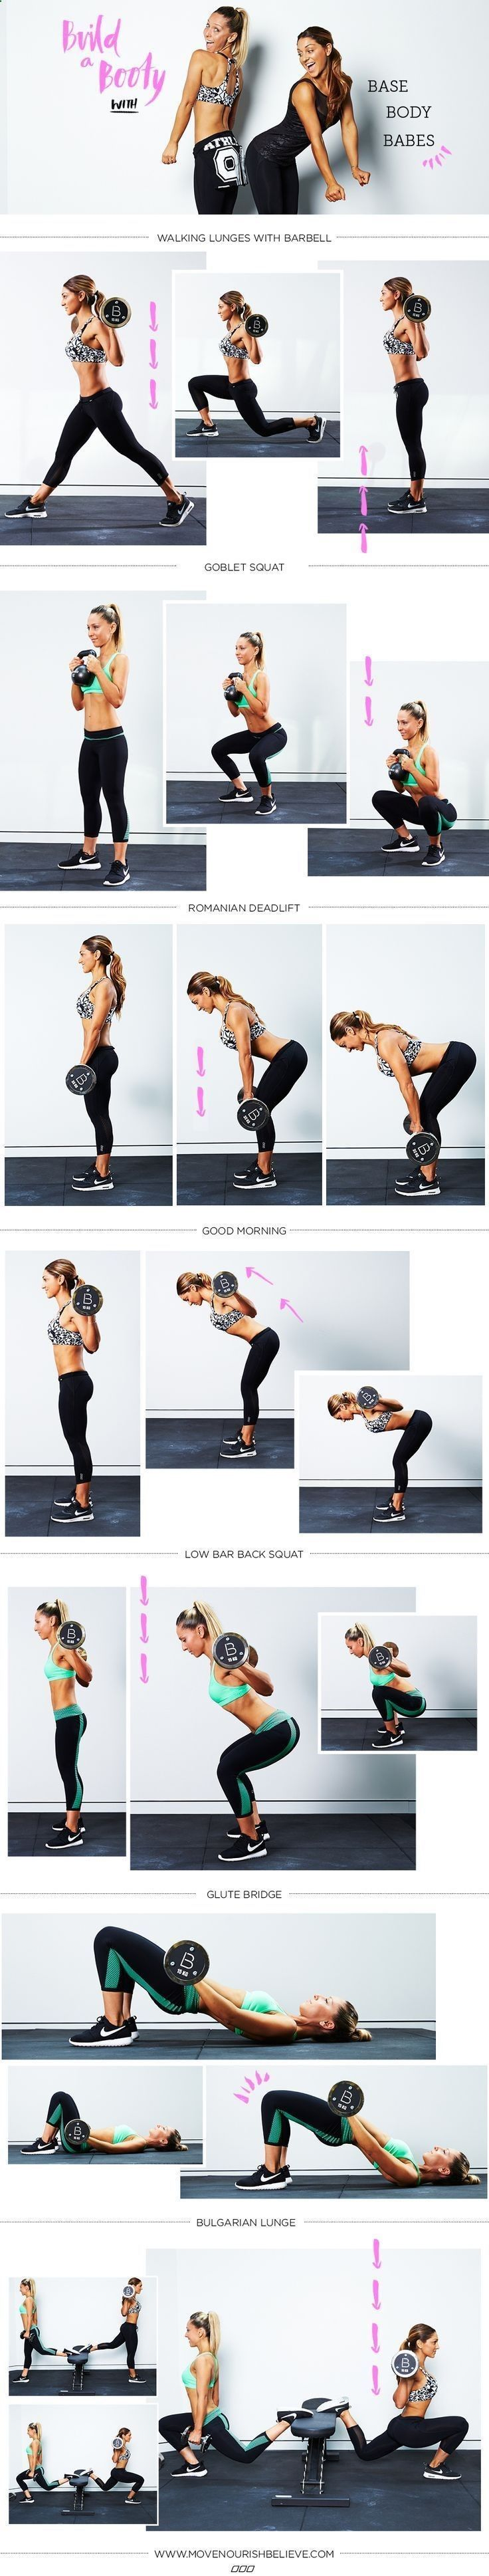 Diy Booty Workout Legs Fitness Butt Exercise Home Exercise Diy